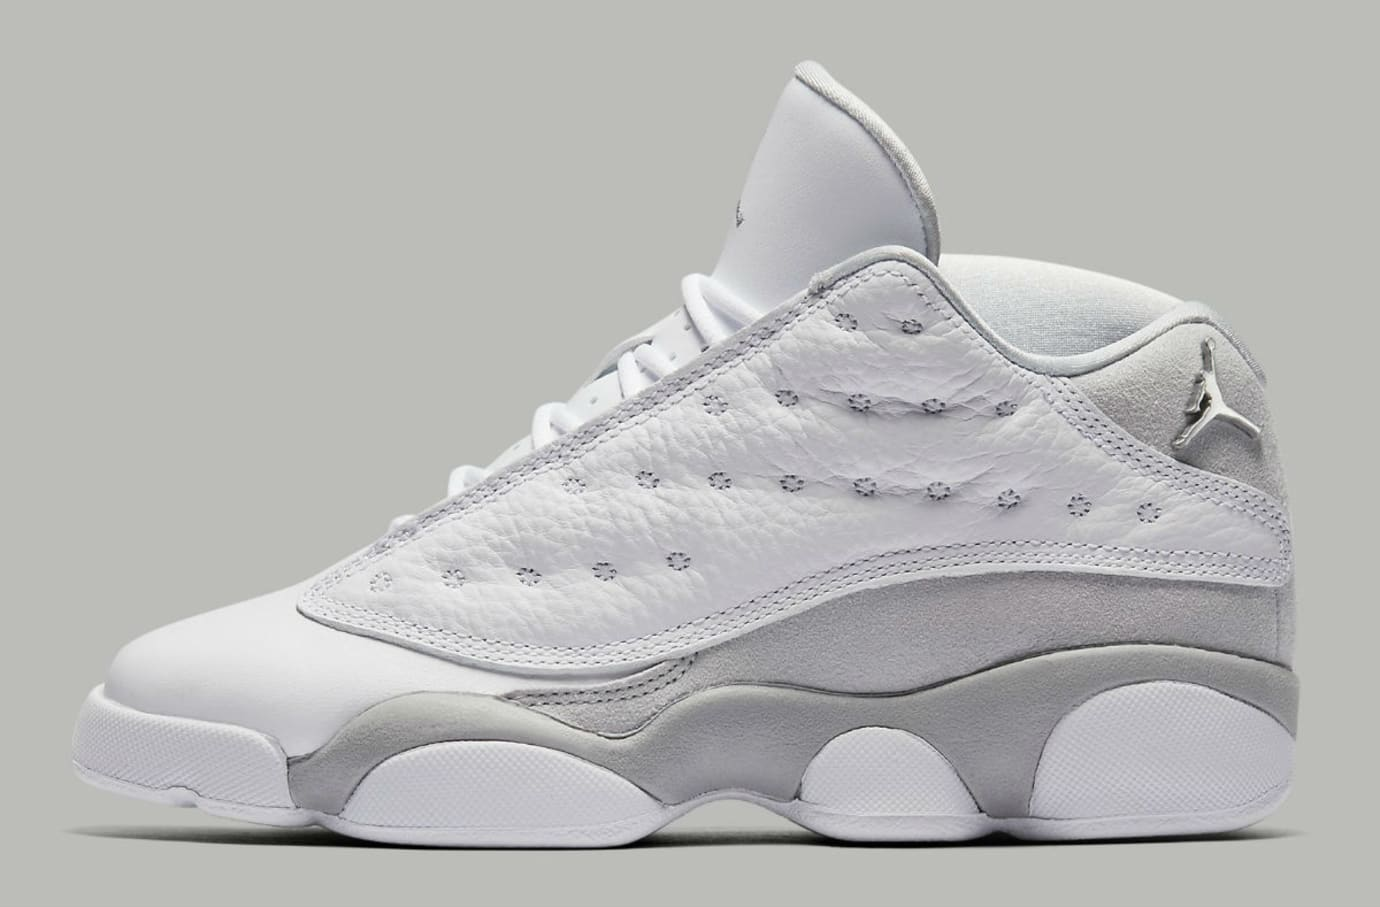 4fa2aaf454f7 Air Jordan 13 Low Pure Platinum Release Date 310810-100